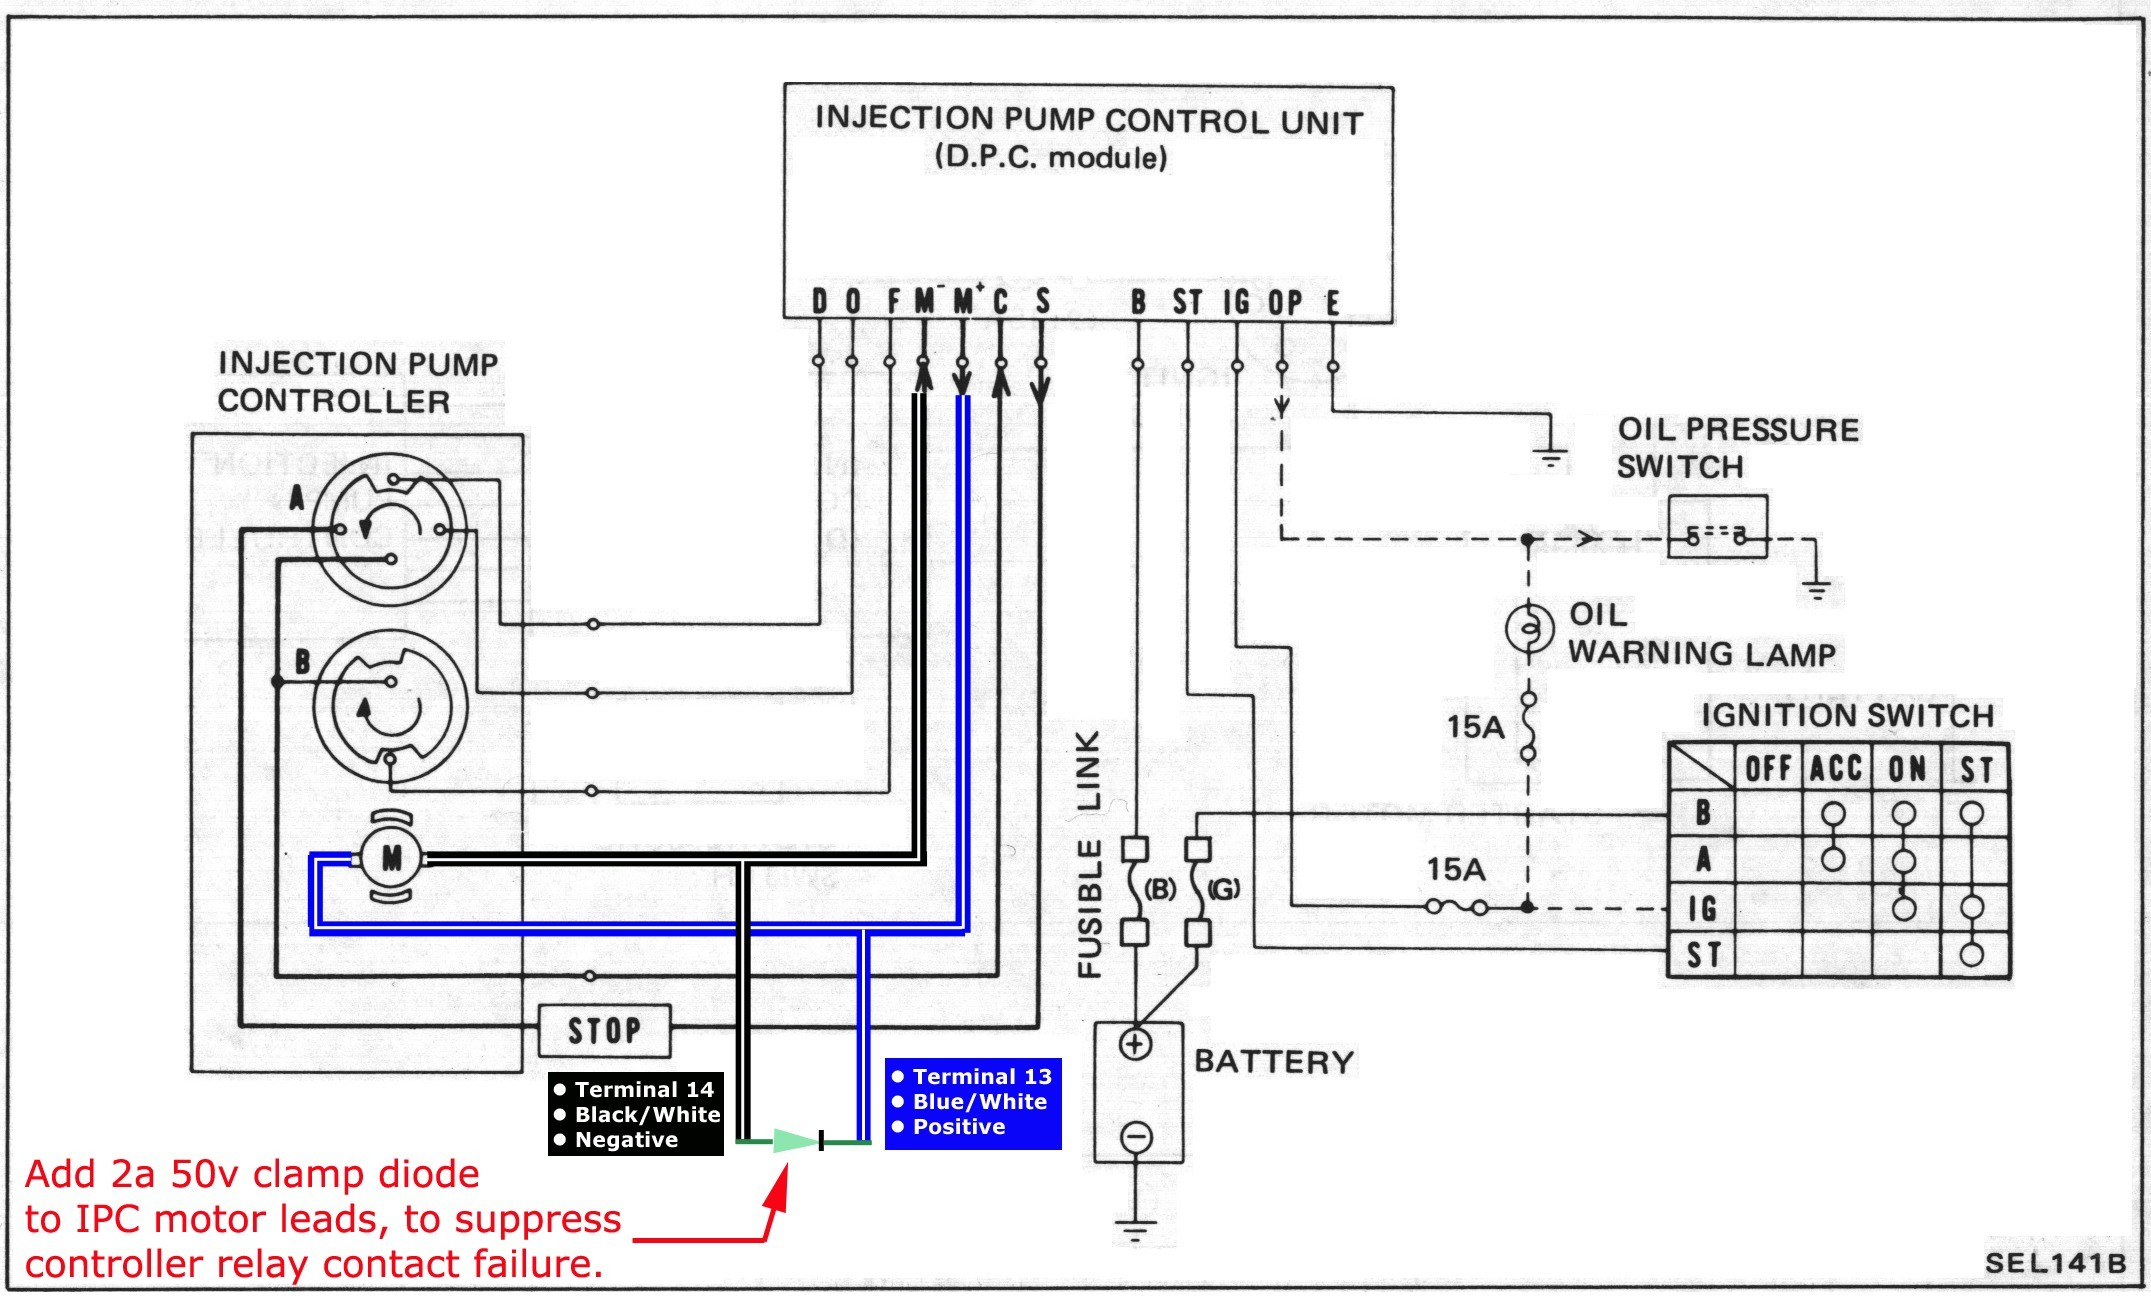 2006 nissan frontier engine diagram nissan maxima engine diagram moreover nissan  altima engine diagram of 2006